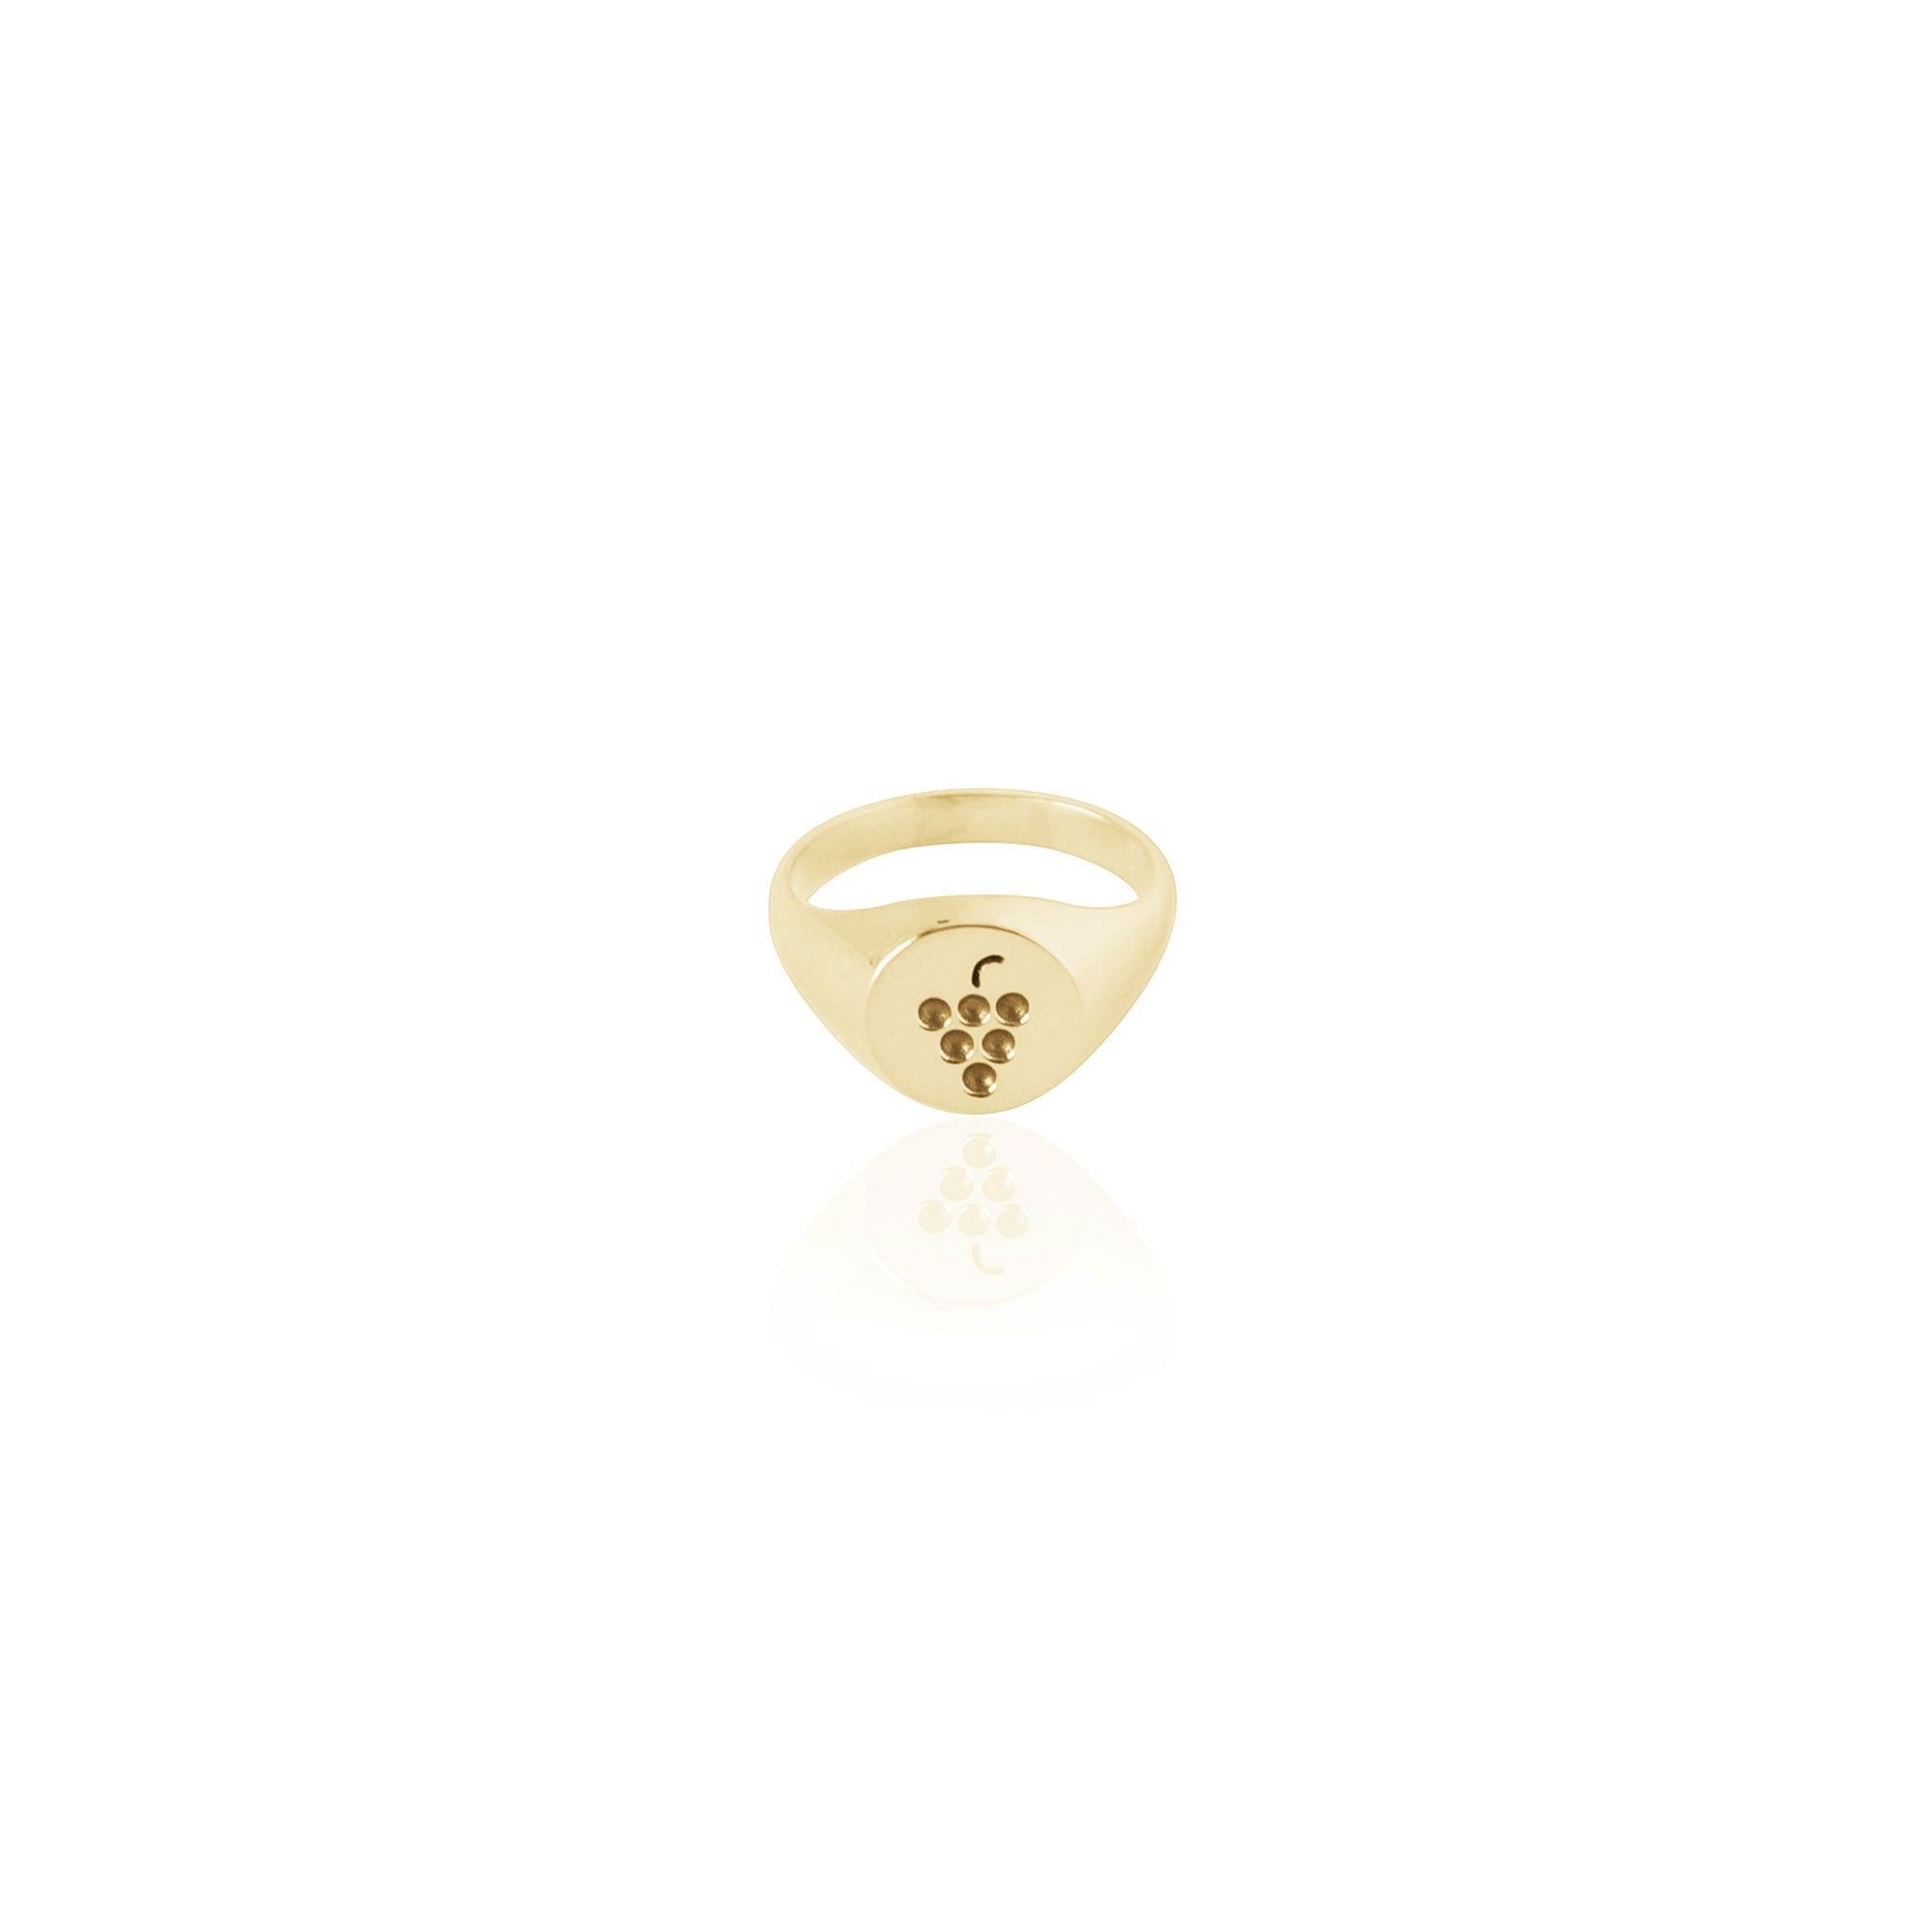 Berry Crumble Sterling Silver Ring in 18kt Gold